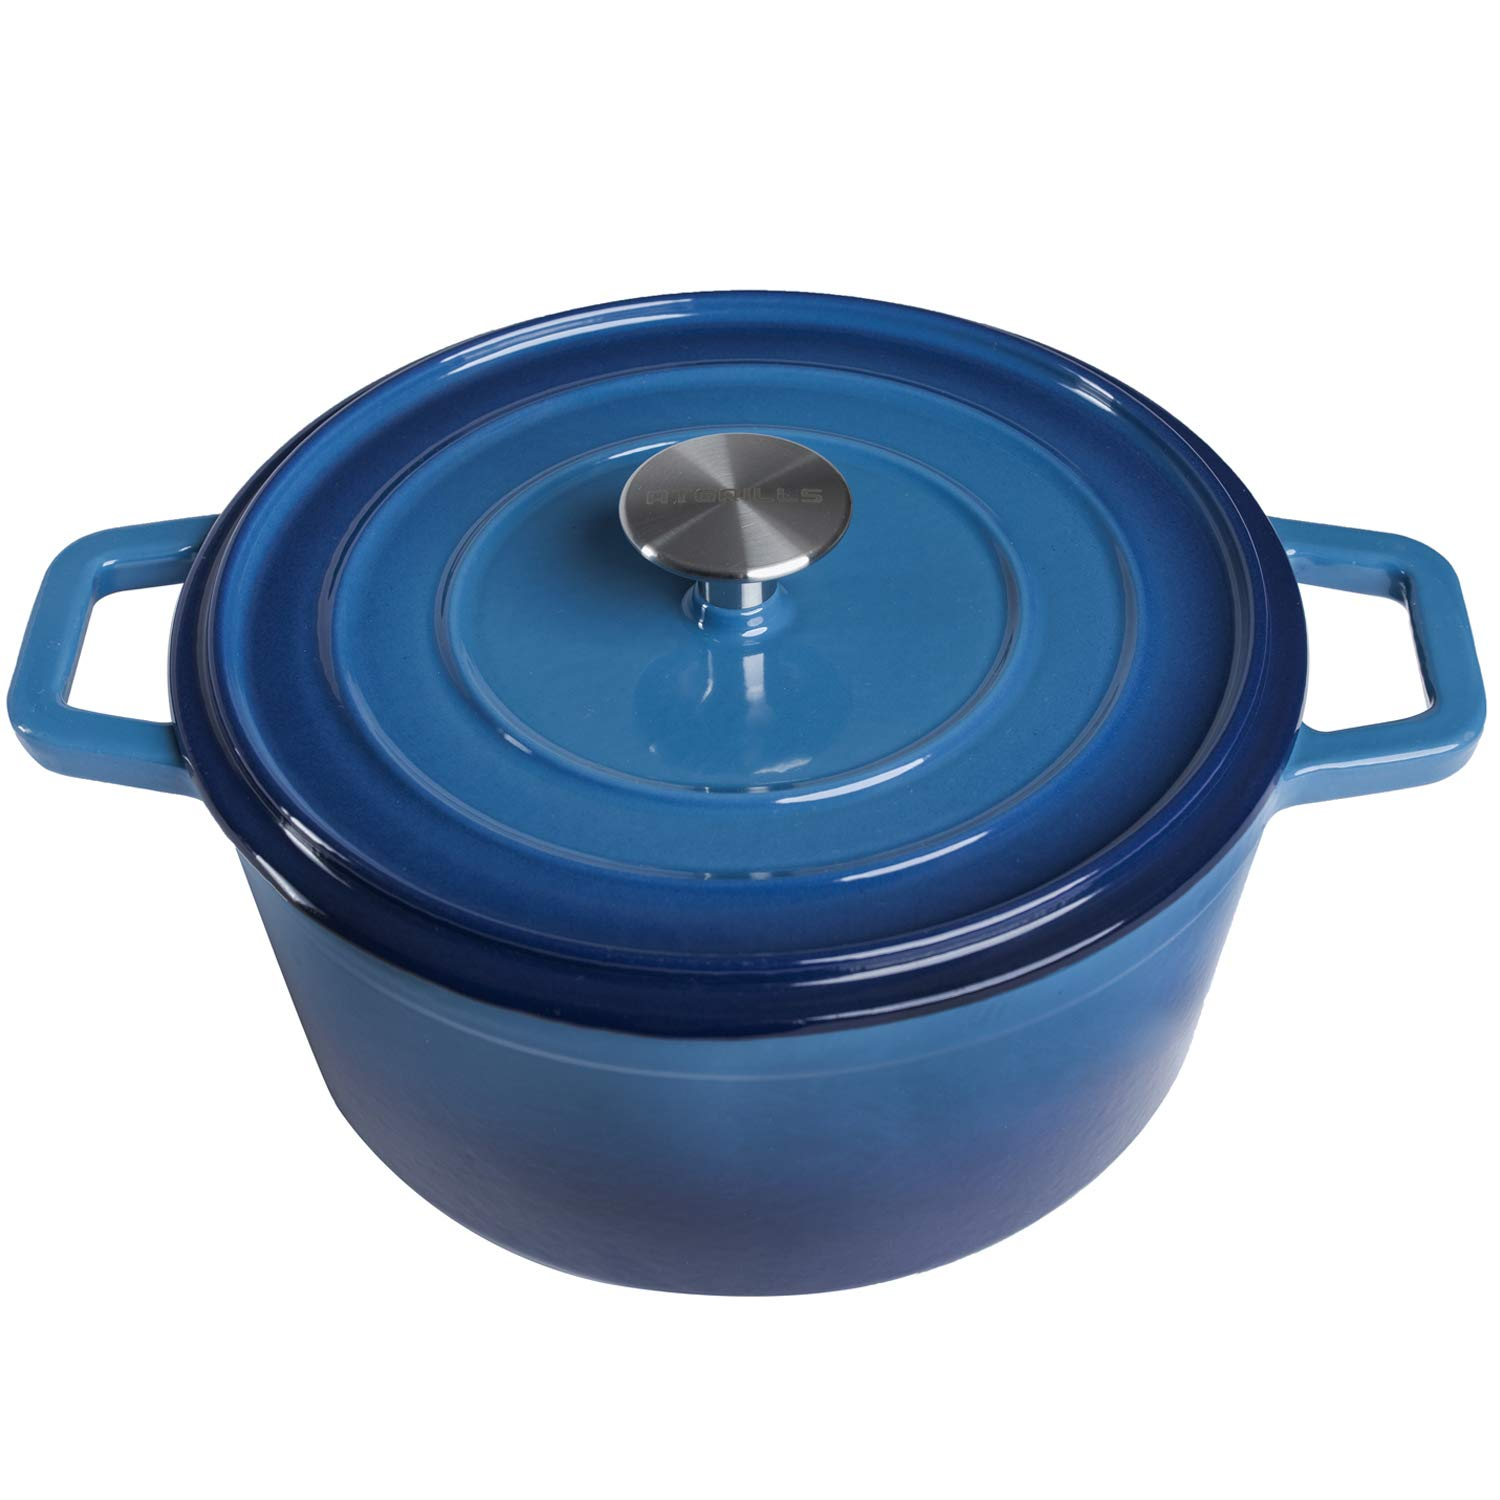 Enameled Cast Iron Dutch/French Oven, 4.5-Quart Round Dutch Oven with Self Basting Lid & Stainless Steel Knob, Electric Gas Stove Top Compatible Cookware, Gradated Blue (IR100-Blue, 4.5qt)